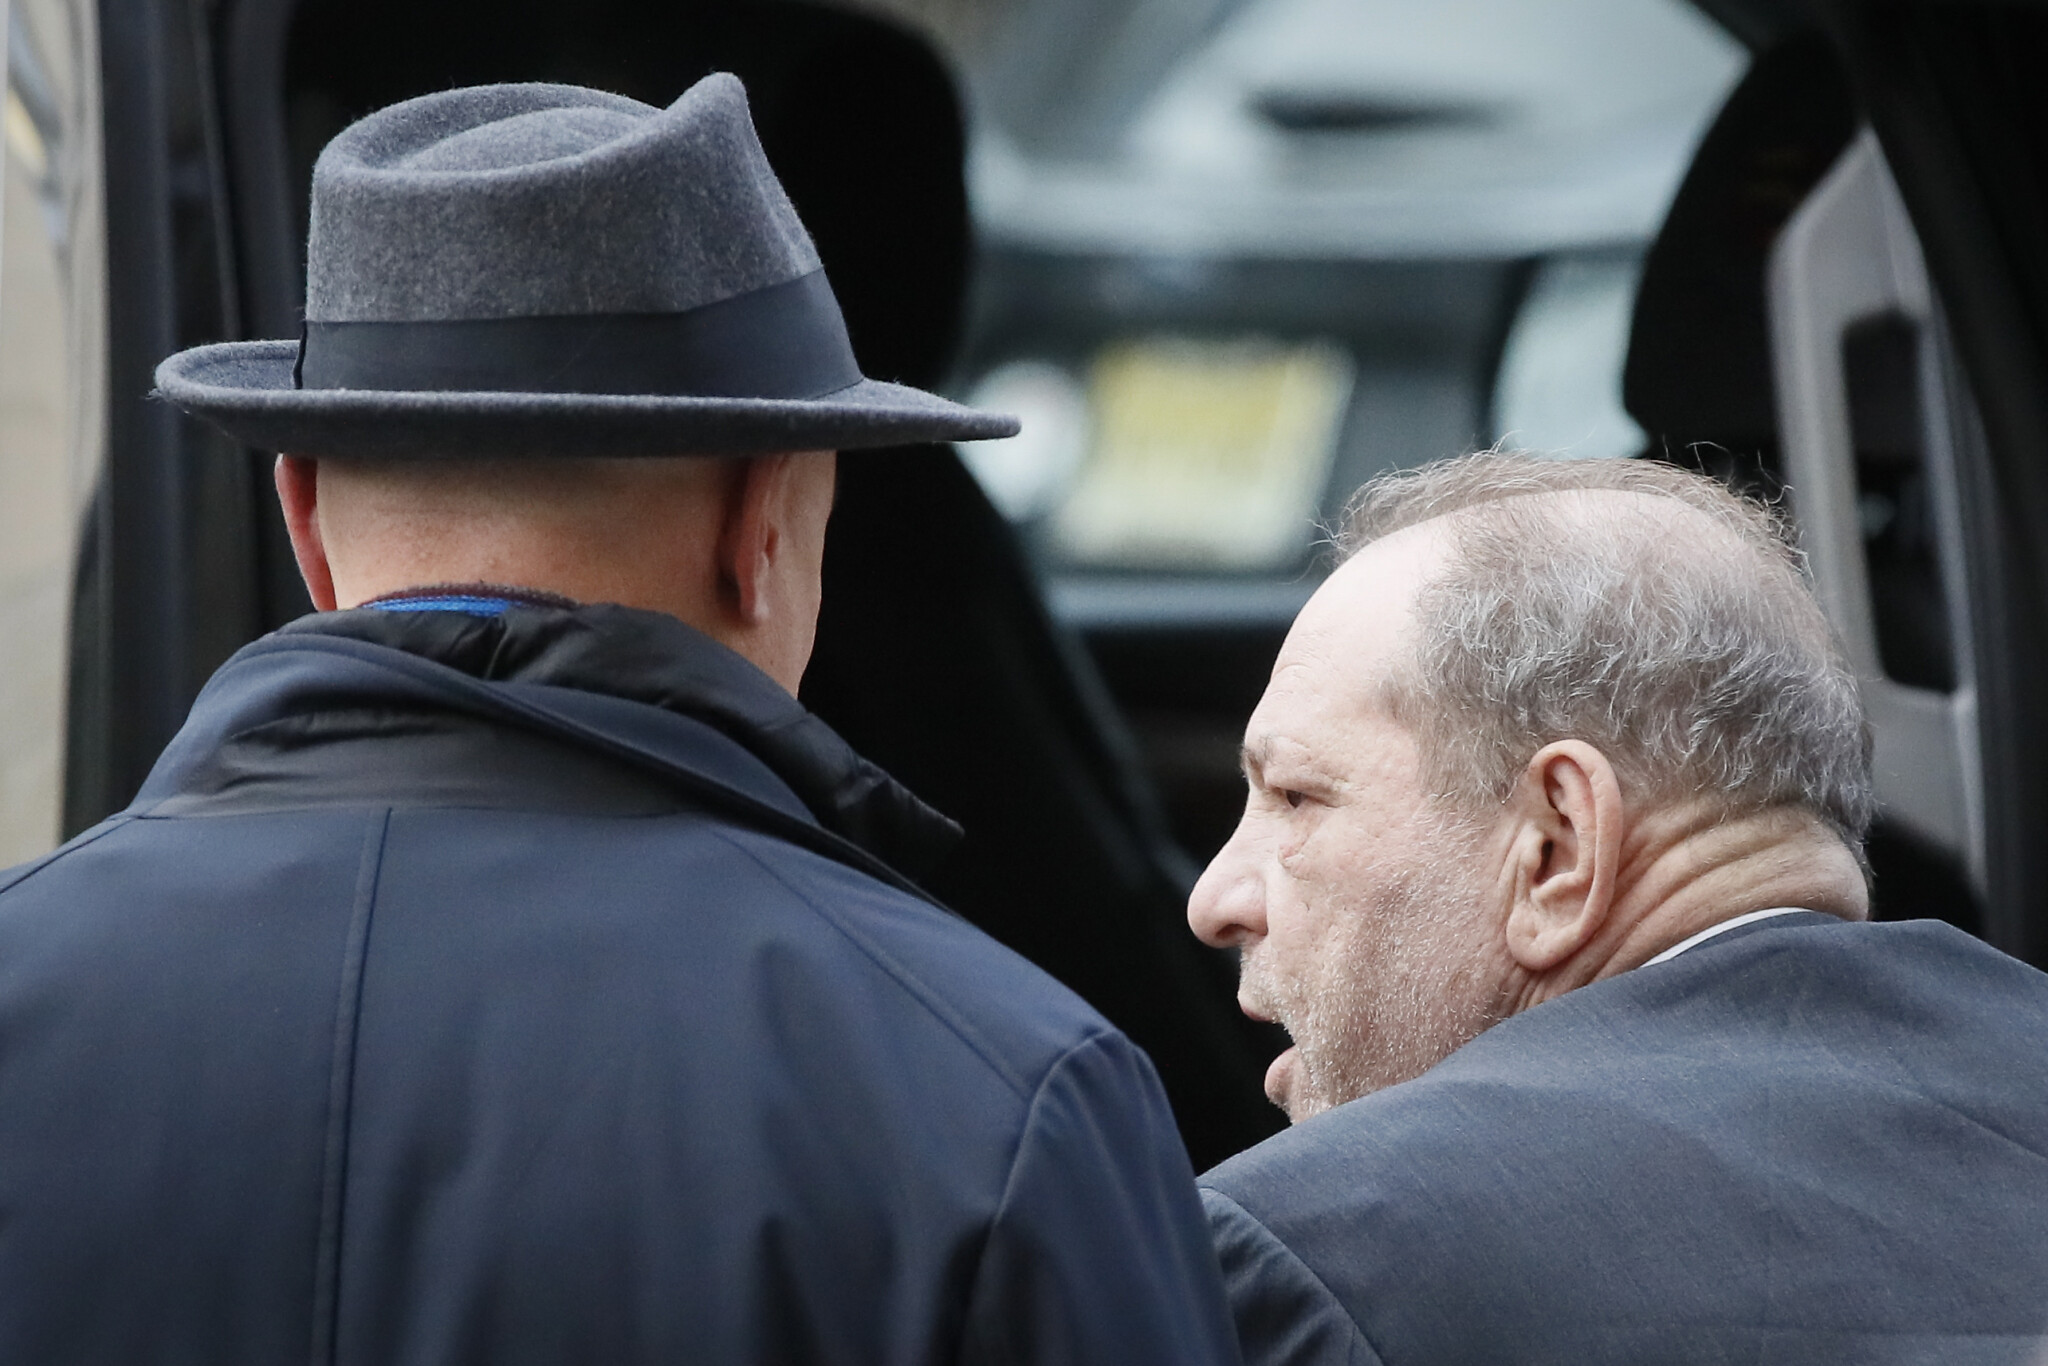 Harvey Weinstein jury seemingly deadlocked on most serious charges